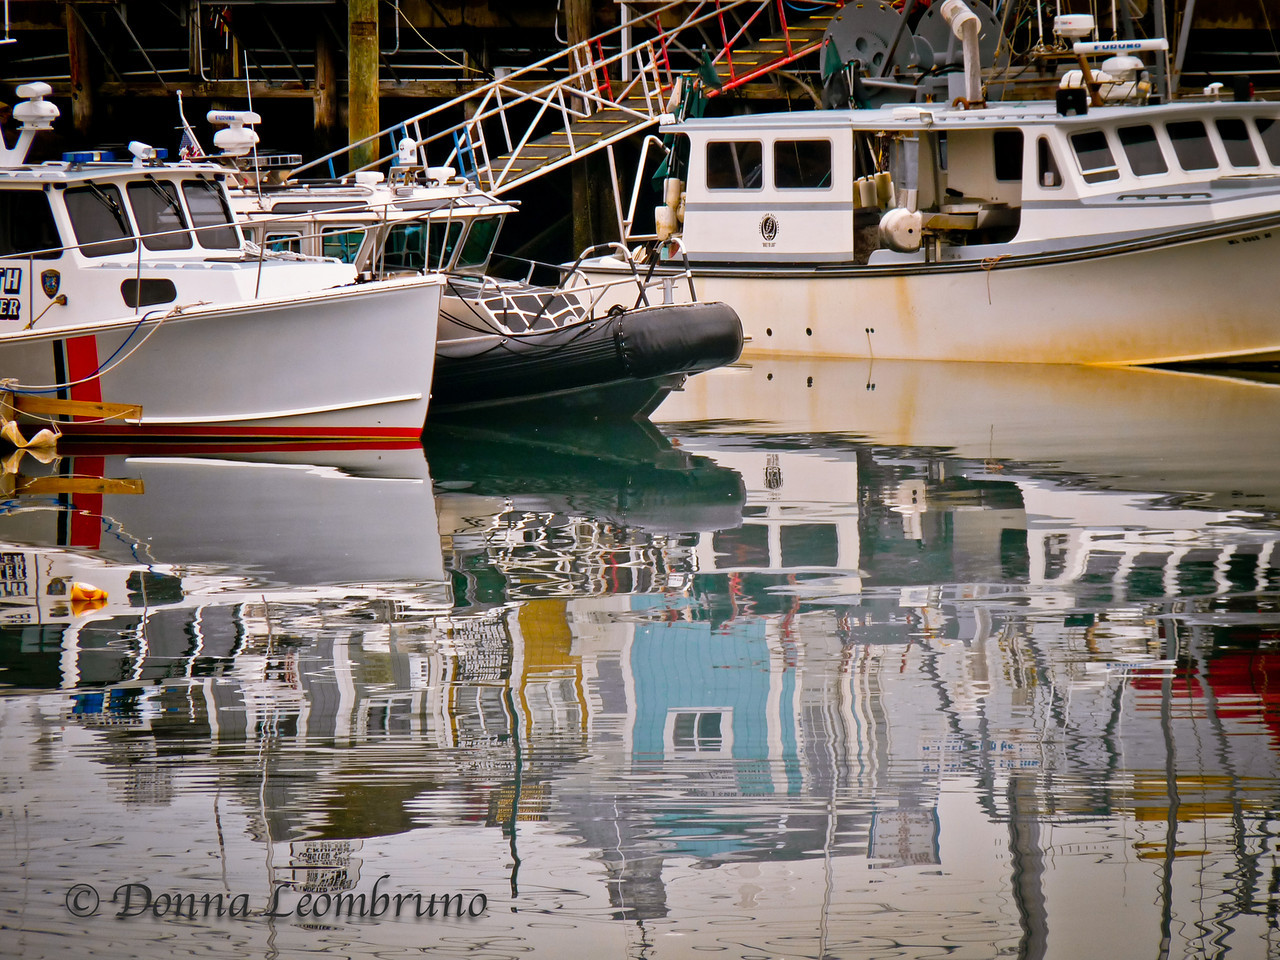 Plymouth, Ma<br /> I took exactly two shots yesterday. This was one of them. I just can't pass up a good reflection, especially one with interesting shapes and color! I'm posting early again as I'm off to the Cape for sunrise. <br /> Have a great Thursday!